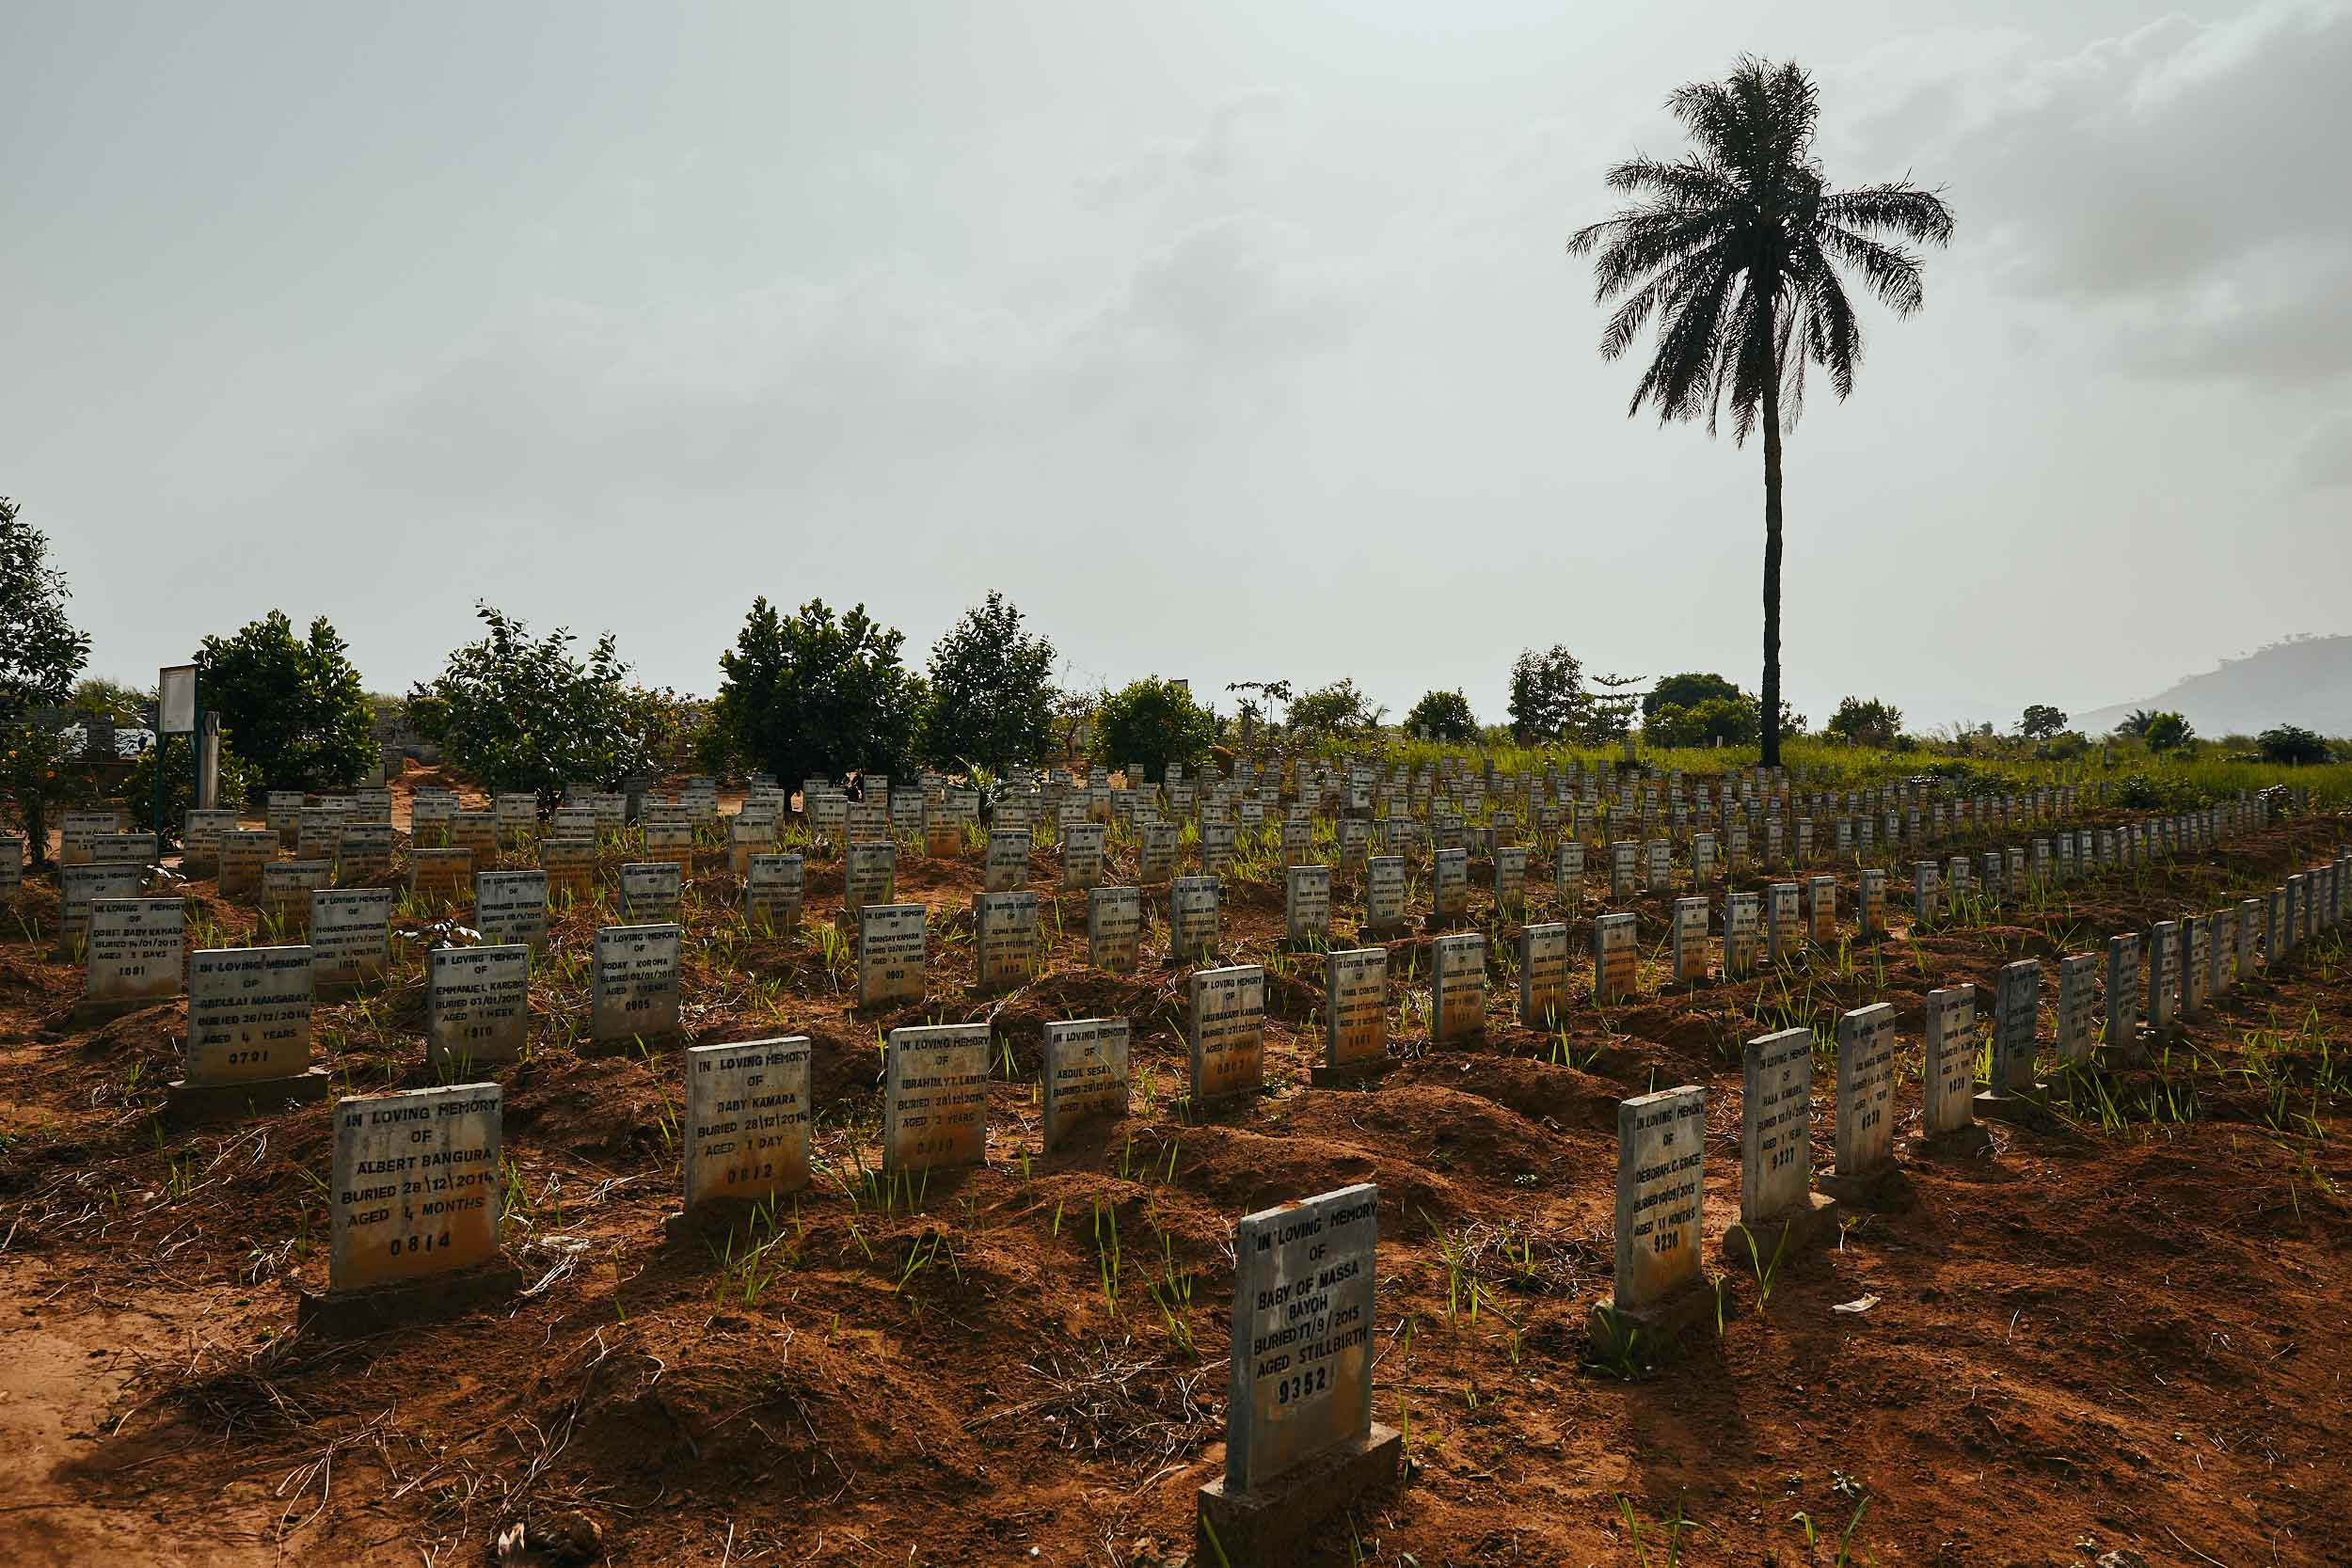 Ebola graves, Waterloo, Sierra Leone.